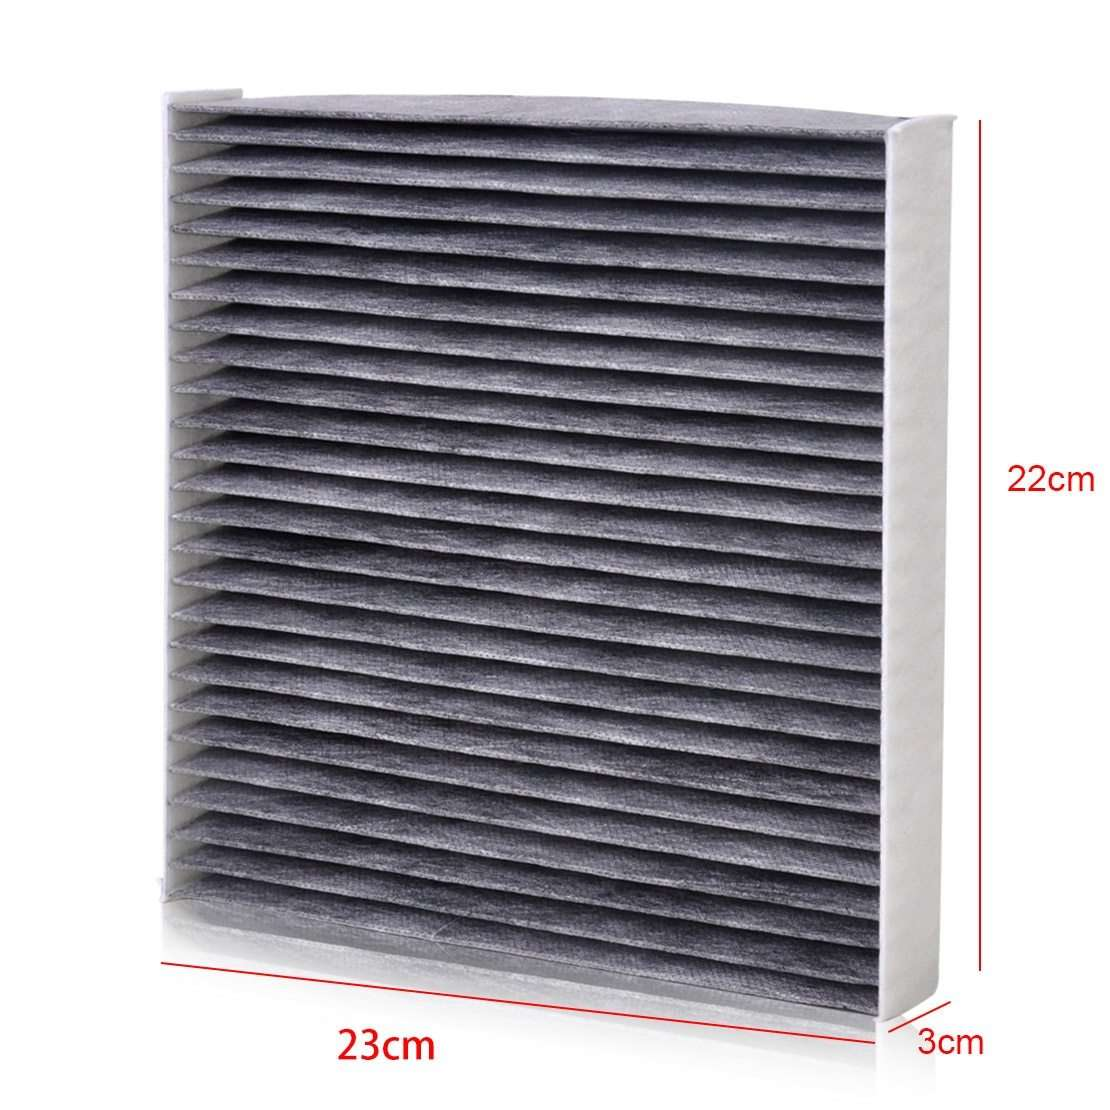 Cabin Air Filter for Honda Acura, Accord, Civic, CR-V, Odyssey, Pilot, Ridgeline - Surpriceme.com